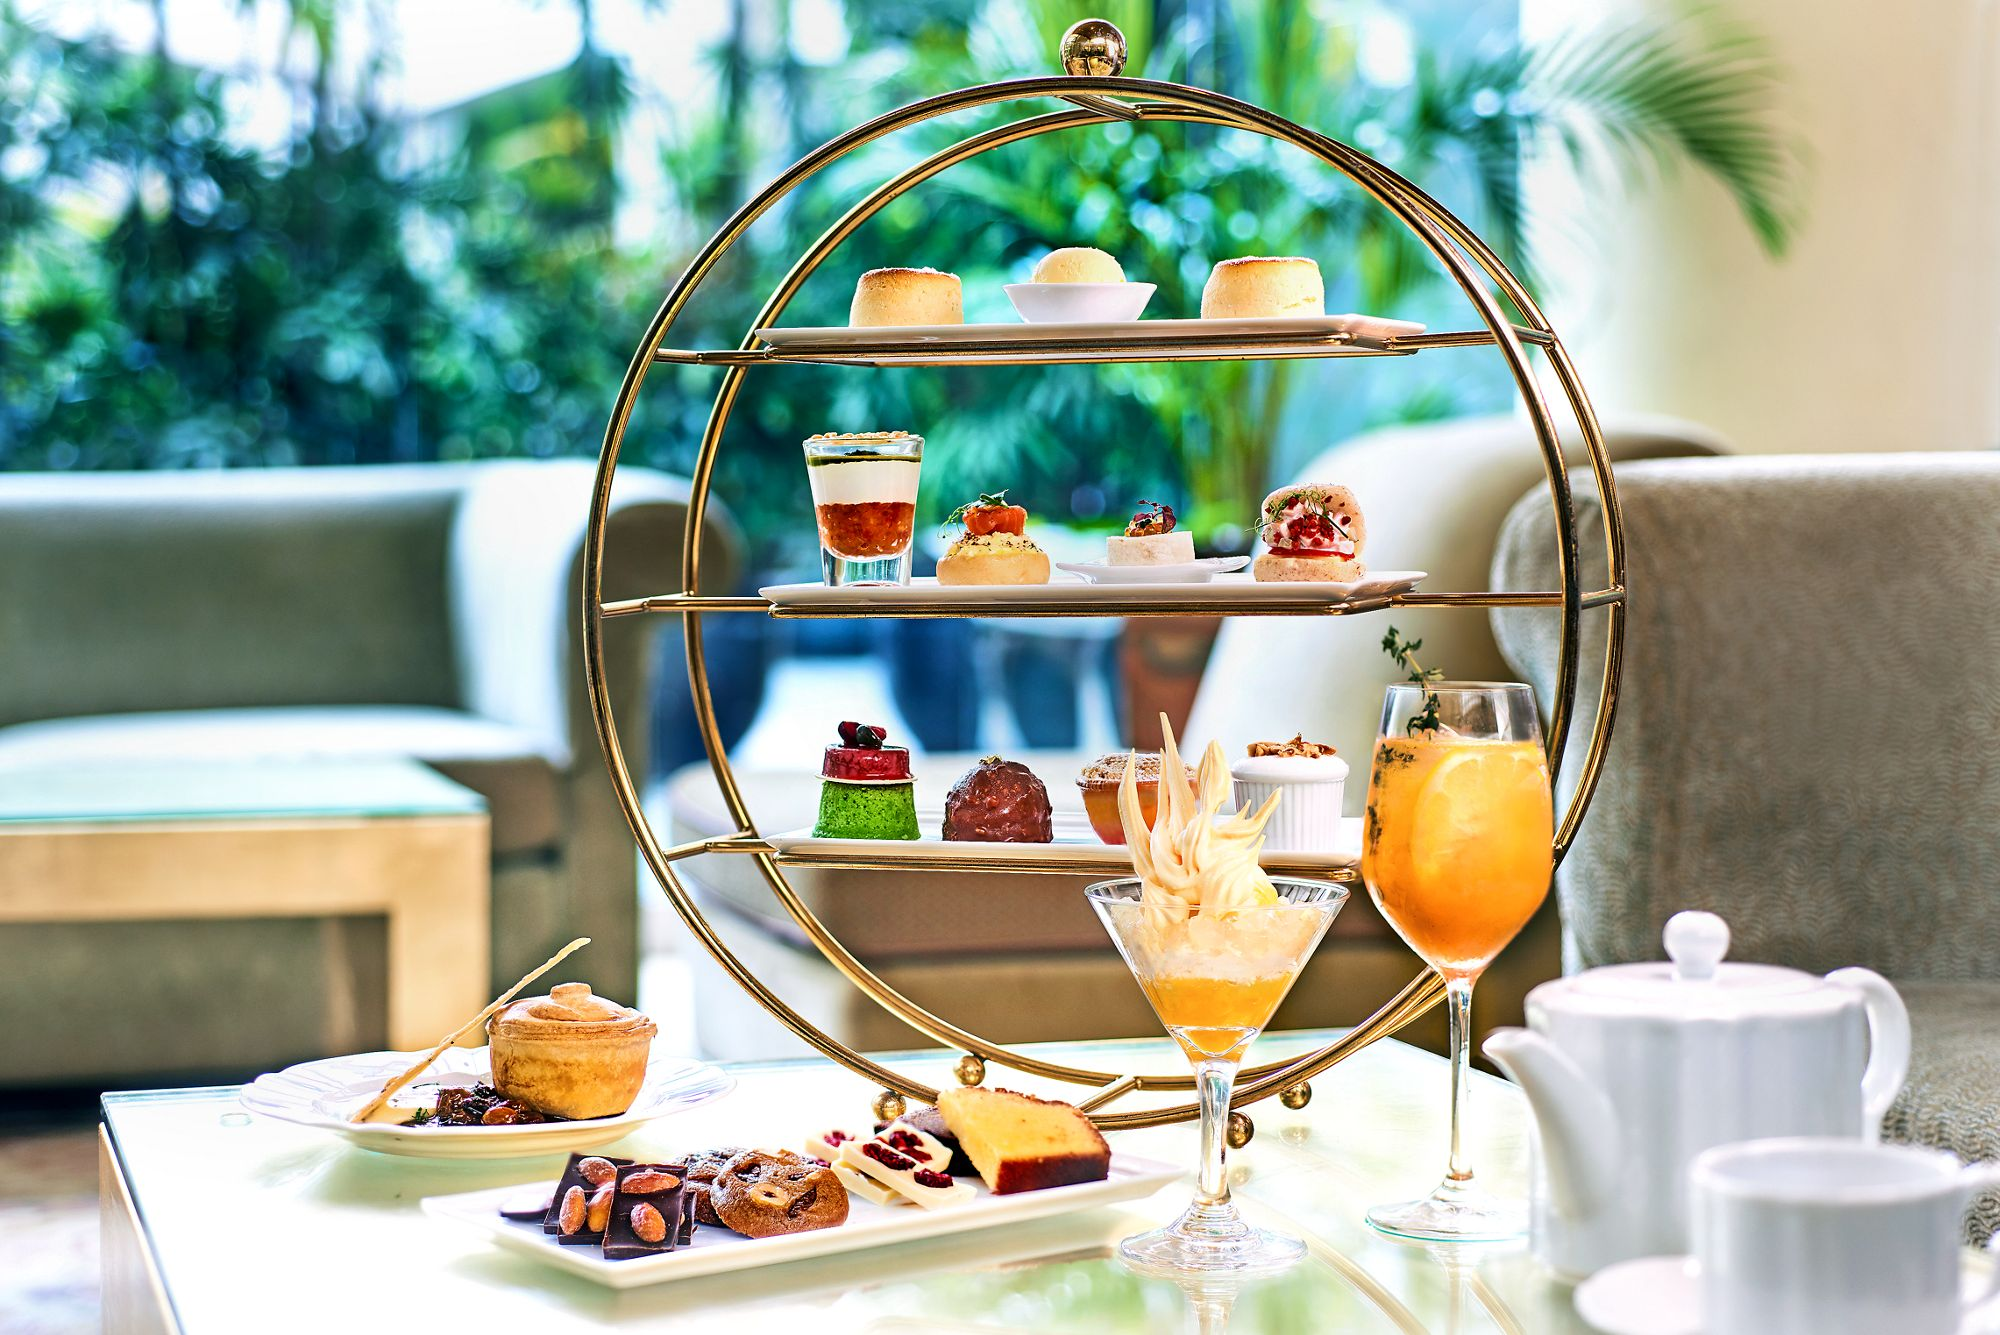 Best High Tea Singapore 07 Chihuly Lounge @ The Ritz-Carlton, Millenia Singapore